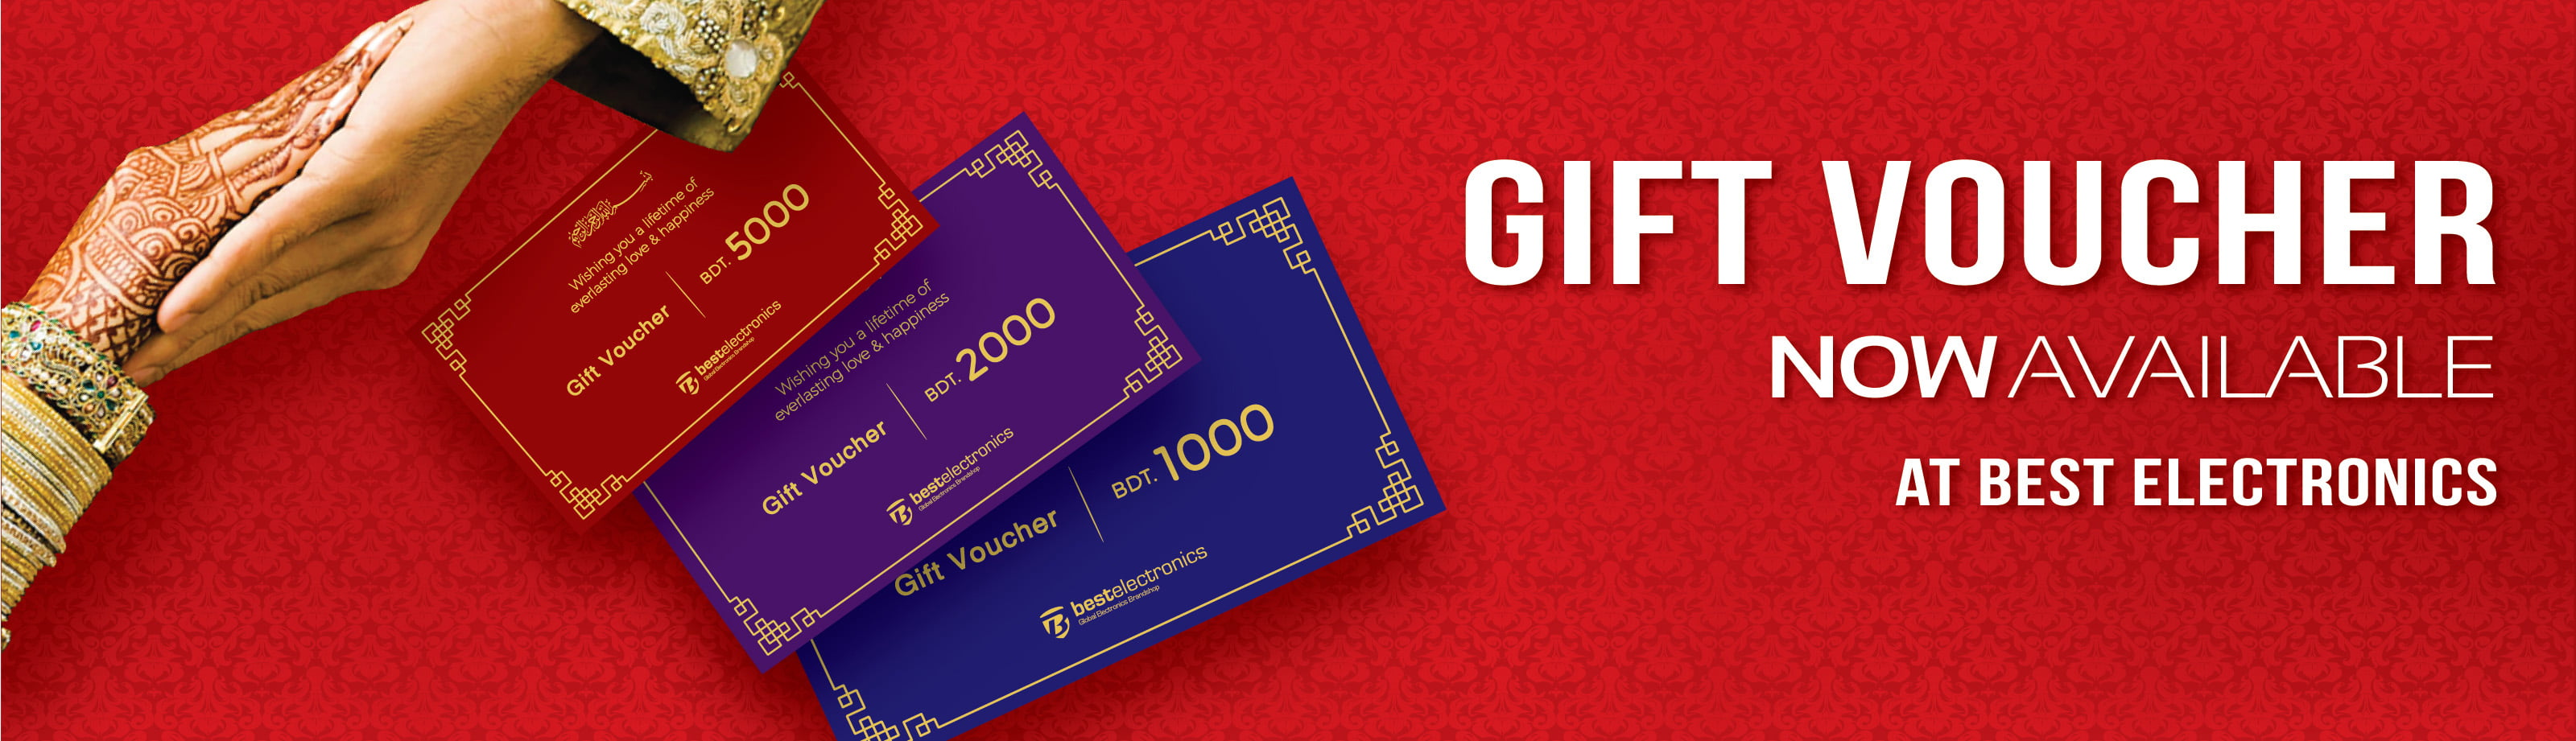 Best Electronics Gift Voucher